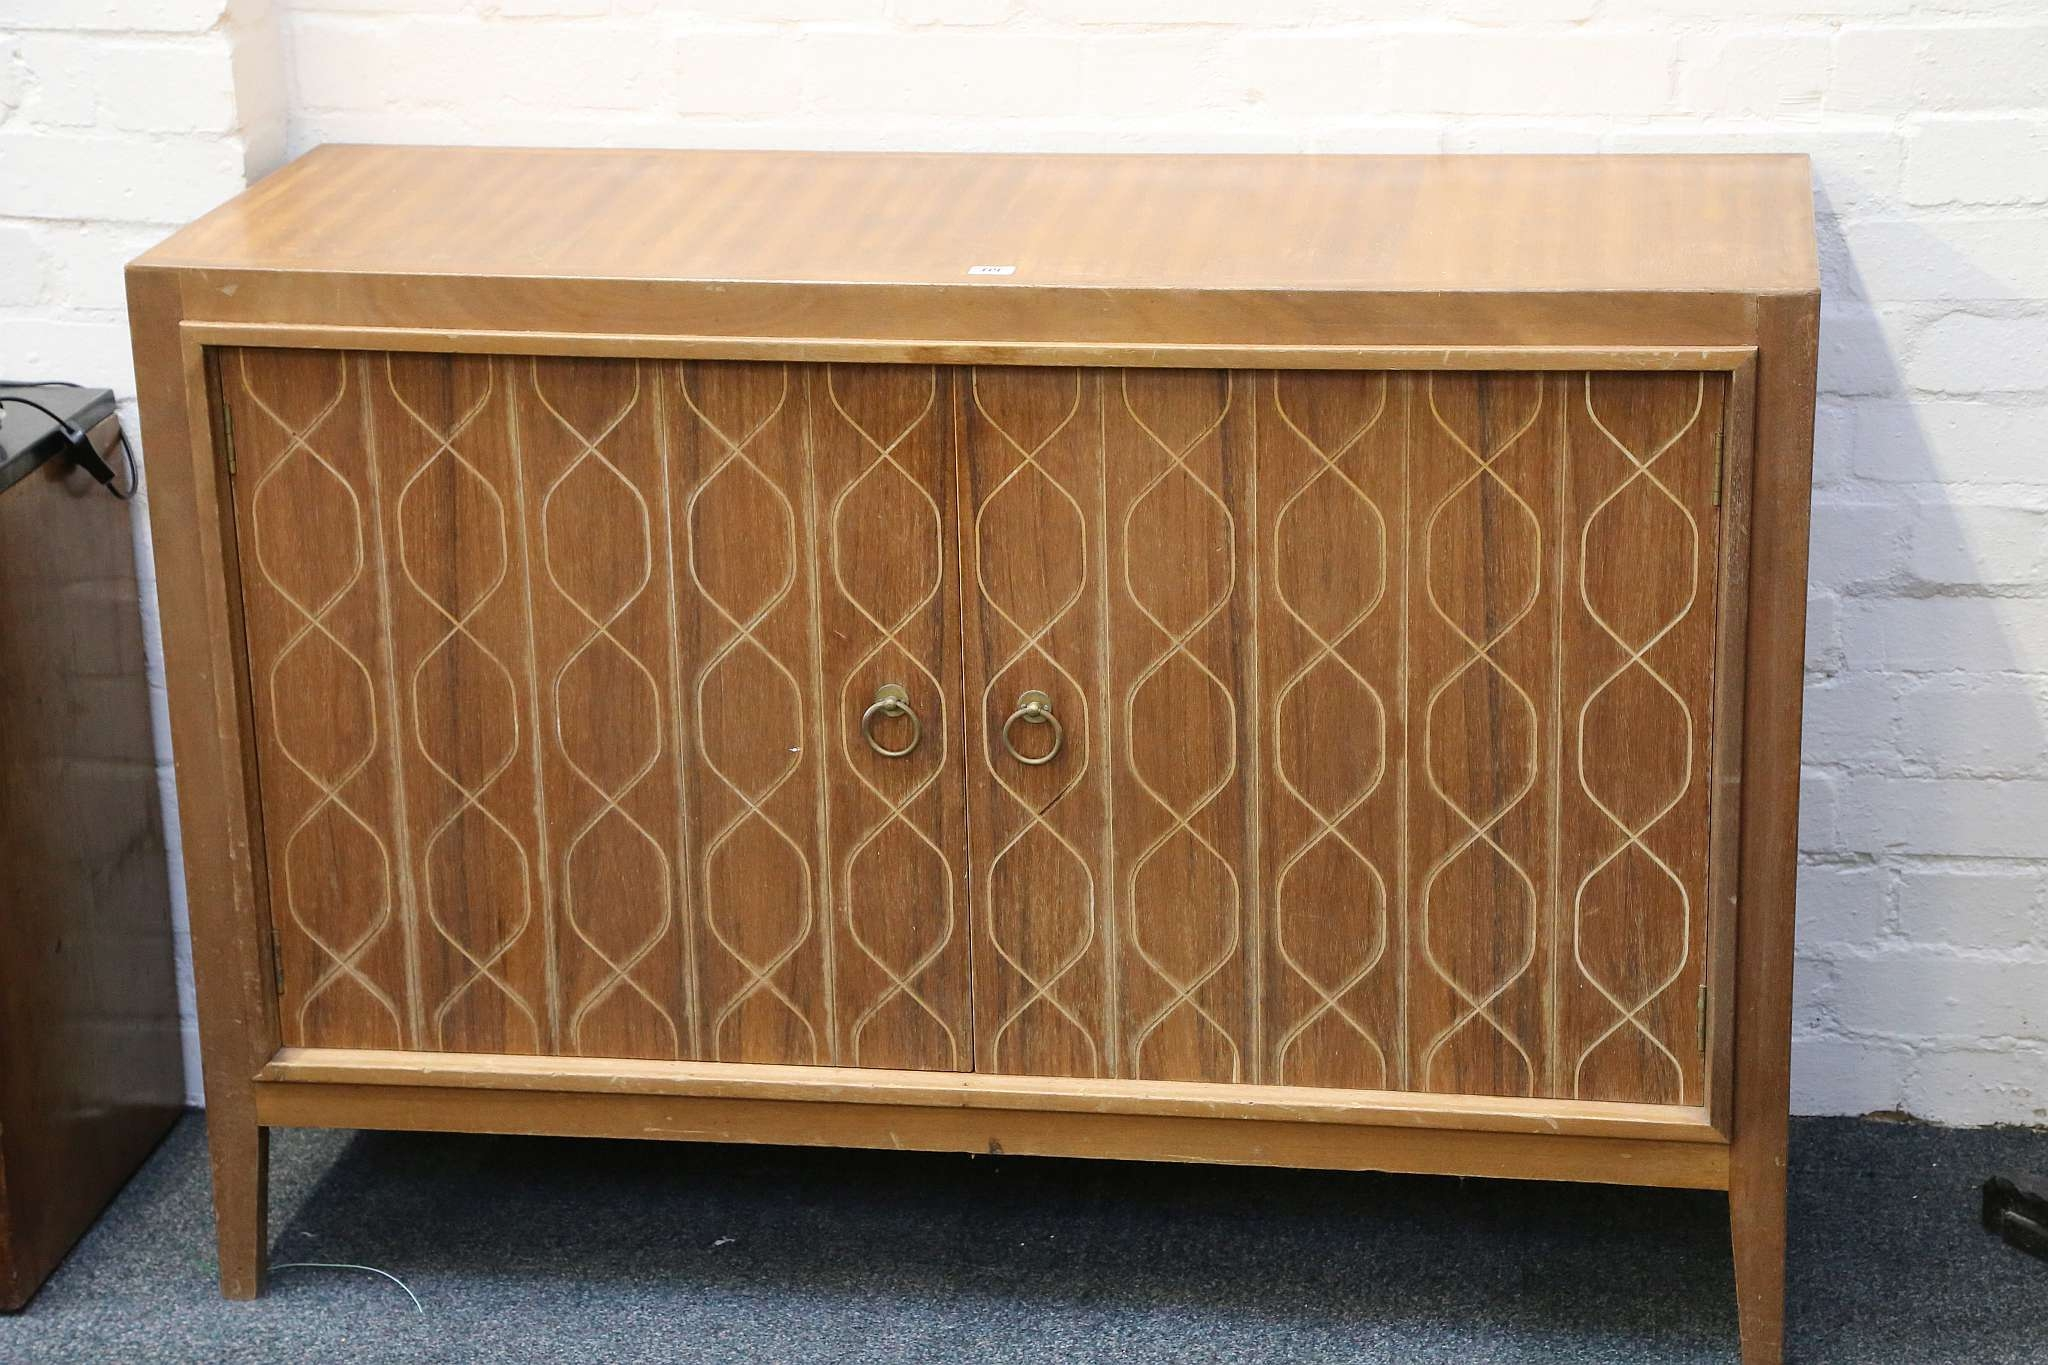 A 1950S Gordon Russell Teak Double Helix Sideboard, With Incised Pertaining To Gordon Russell Helix Sideboards (View 1 of 20)